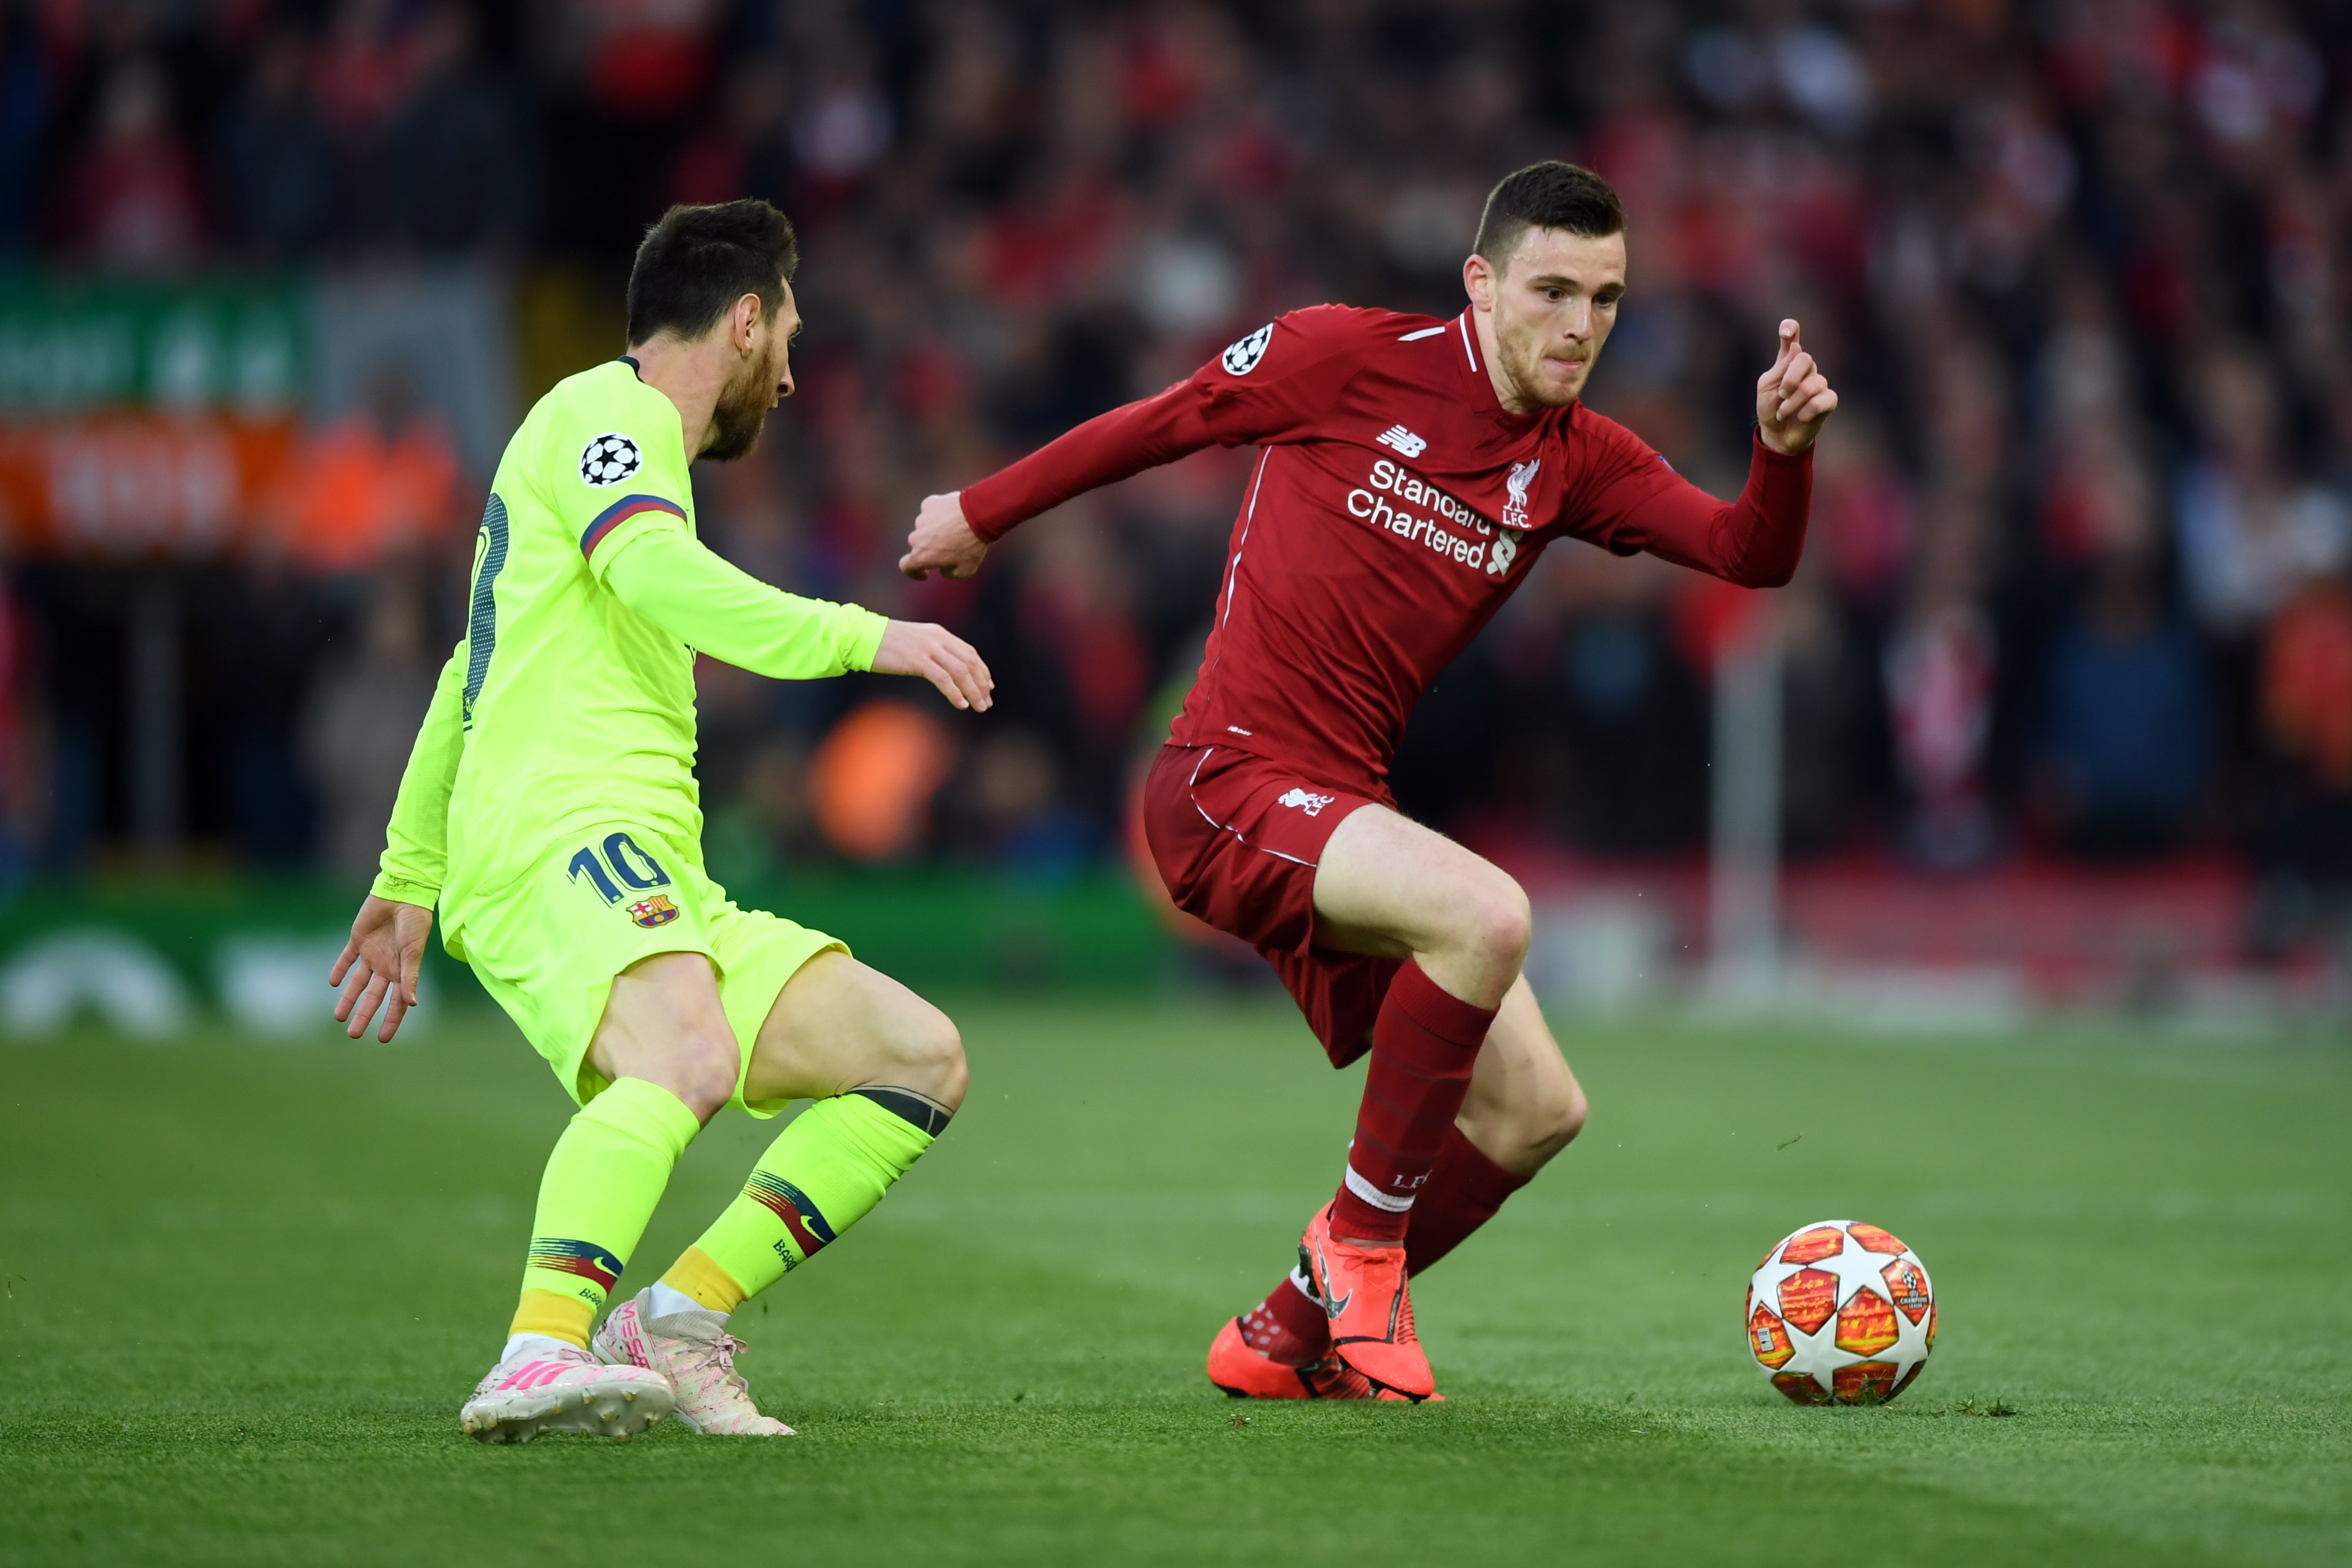 Barcelona are keen on Robertson after his glowing performance against them in the UCL. (Photo courtesy: AFP/Getty)